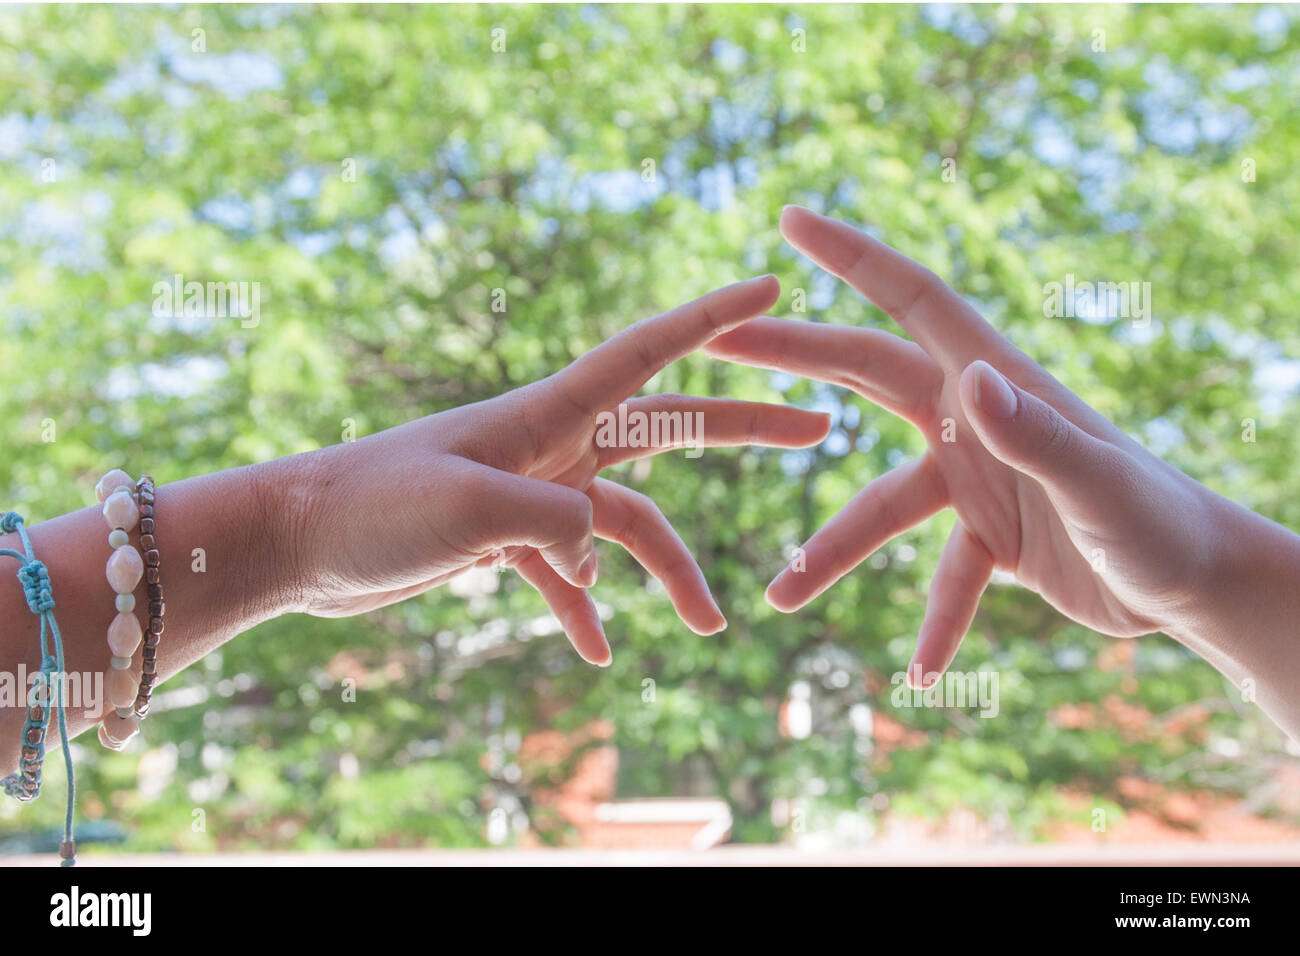 Youthful hands up demonstrating emotion, statements of togetherness. - Stock Image